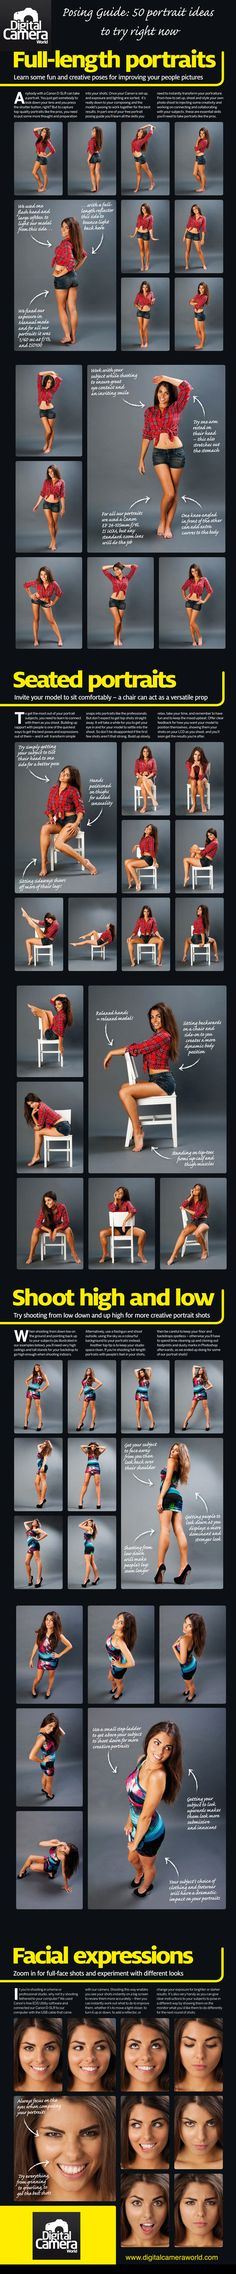 Posing Guide 54 Portrait Ideas to Try Right Now Infographic . Topic: photography, camera